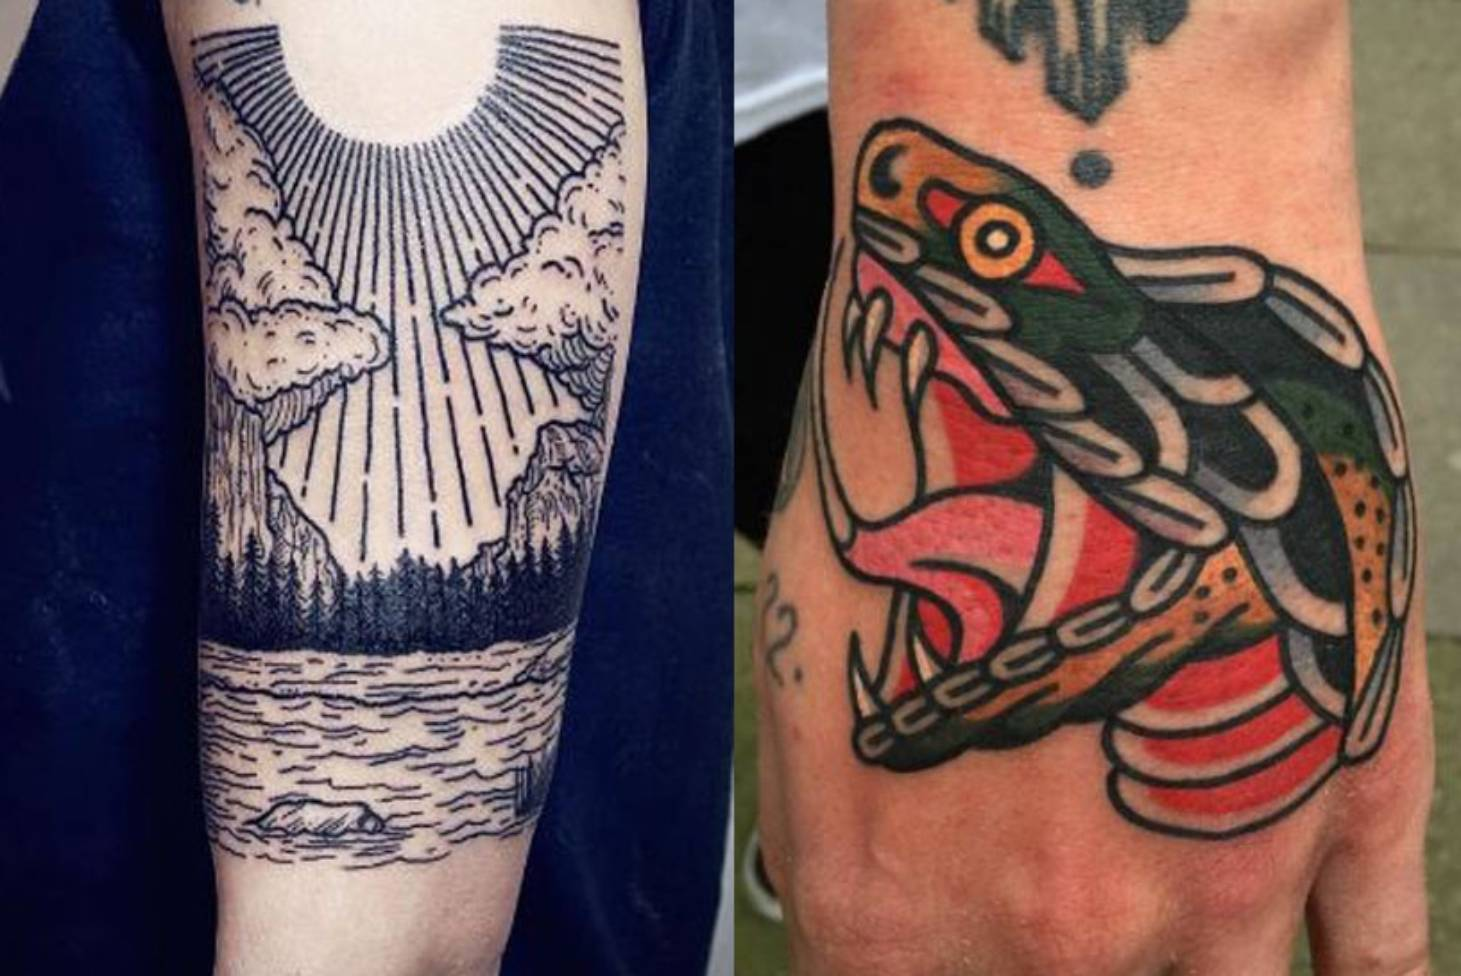 Calligraphy Tattoo Artist Toronto 10 Tattoo Artists We Re Obsessed With Stuff Co Nz